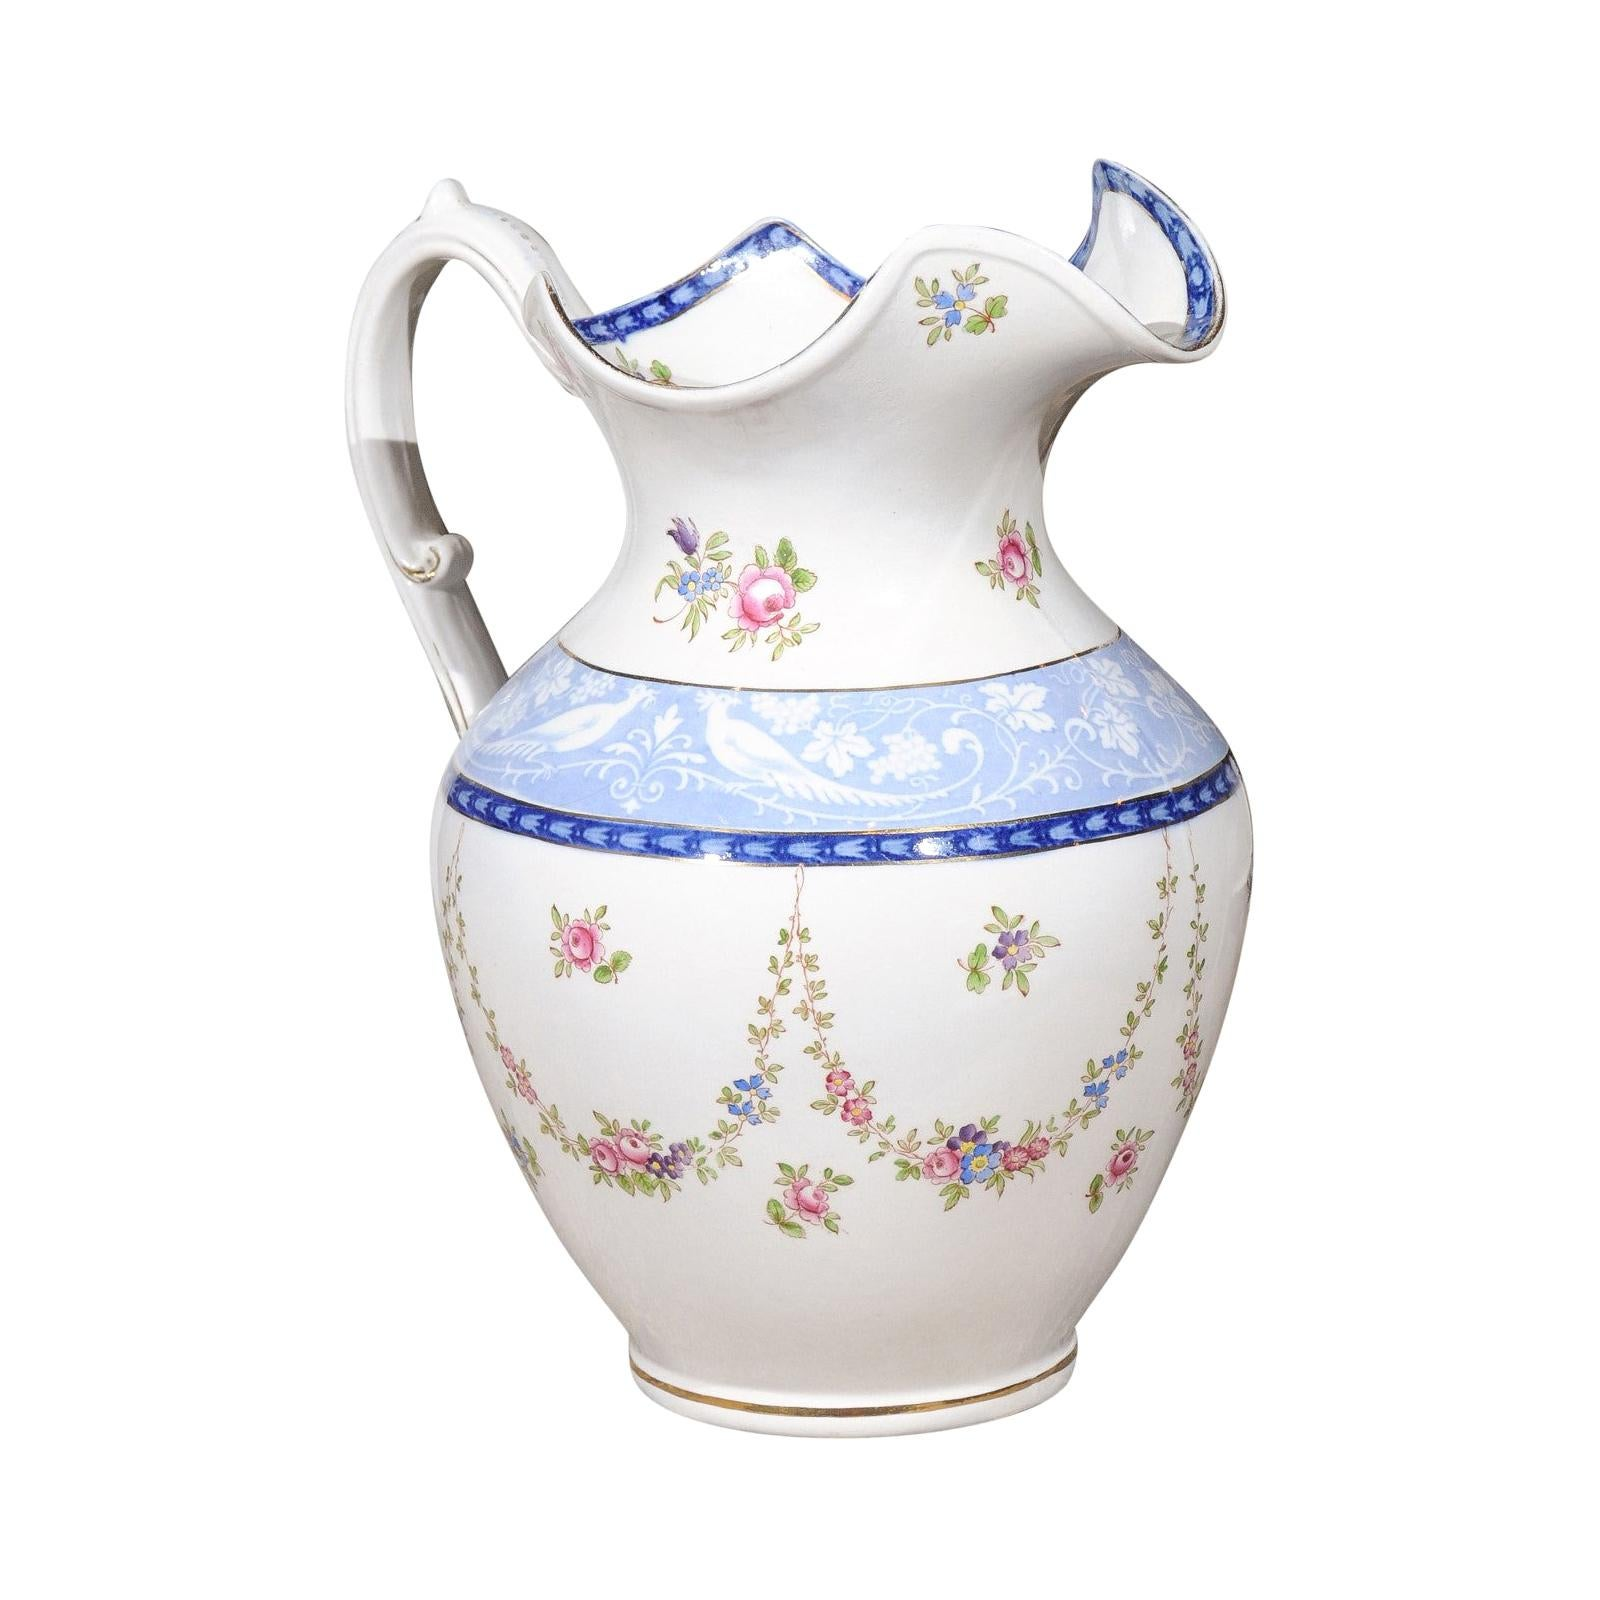 English Booth's China Pitcher with Pink Roses and Blue and White Pheasants